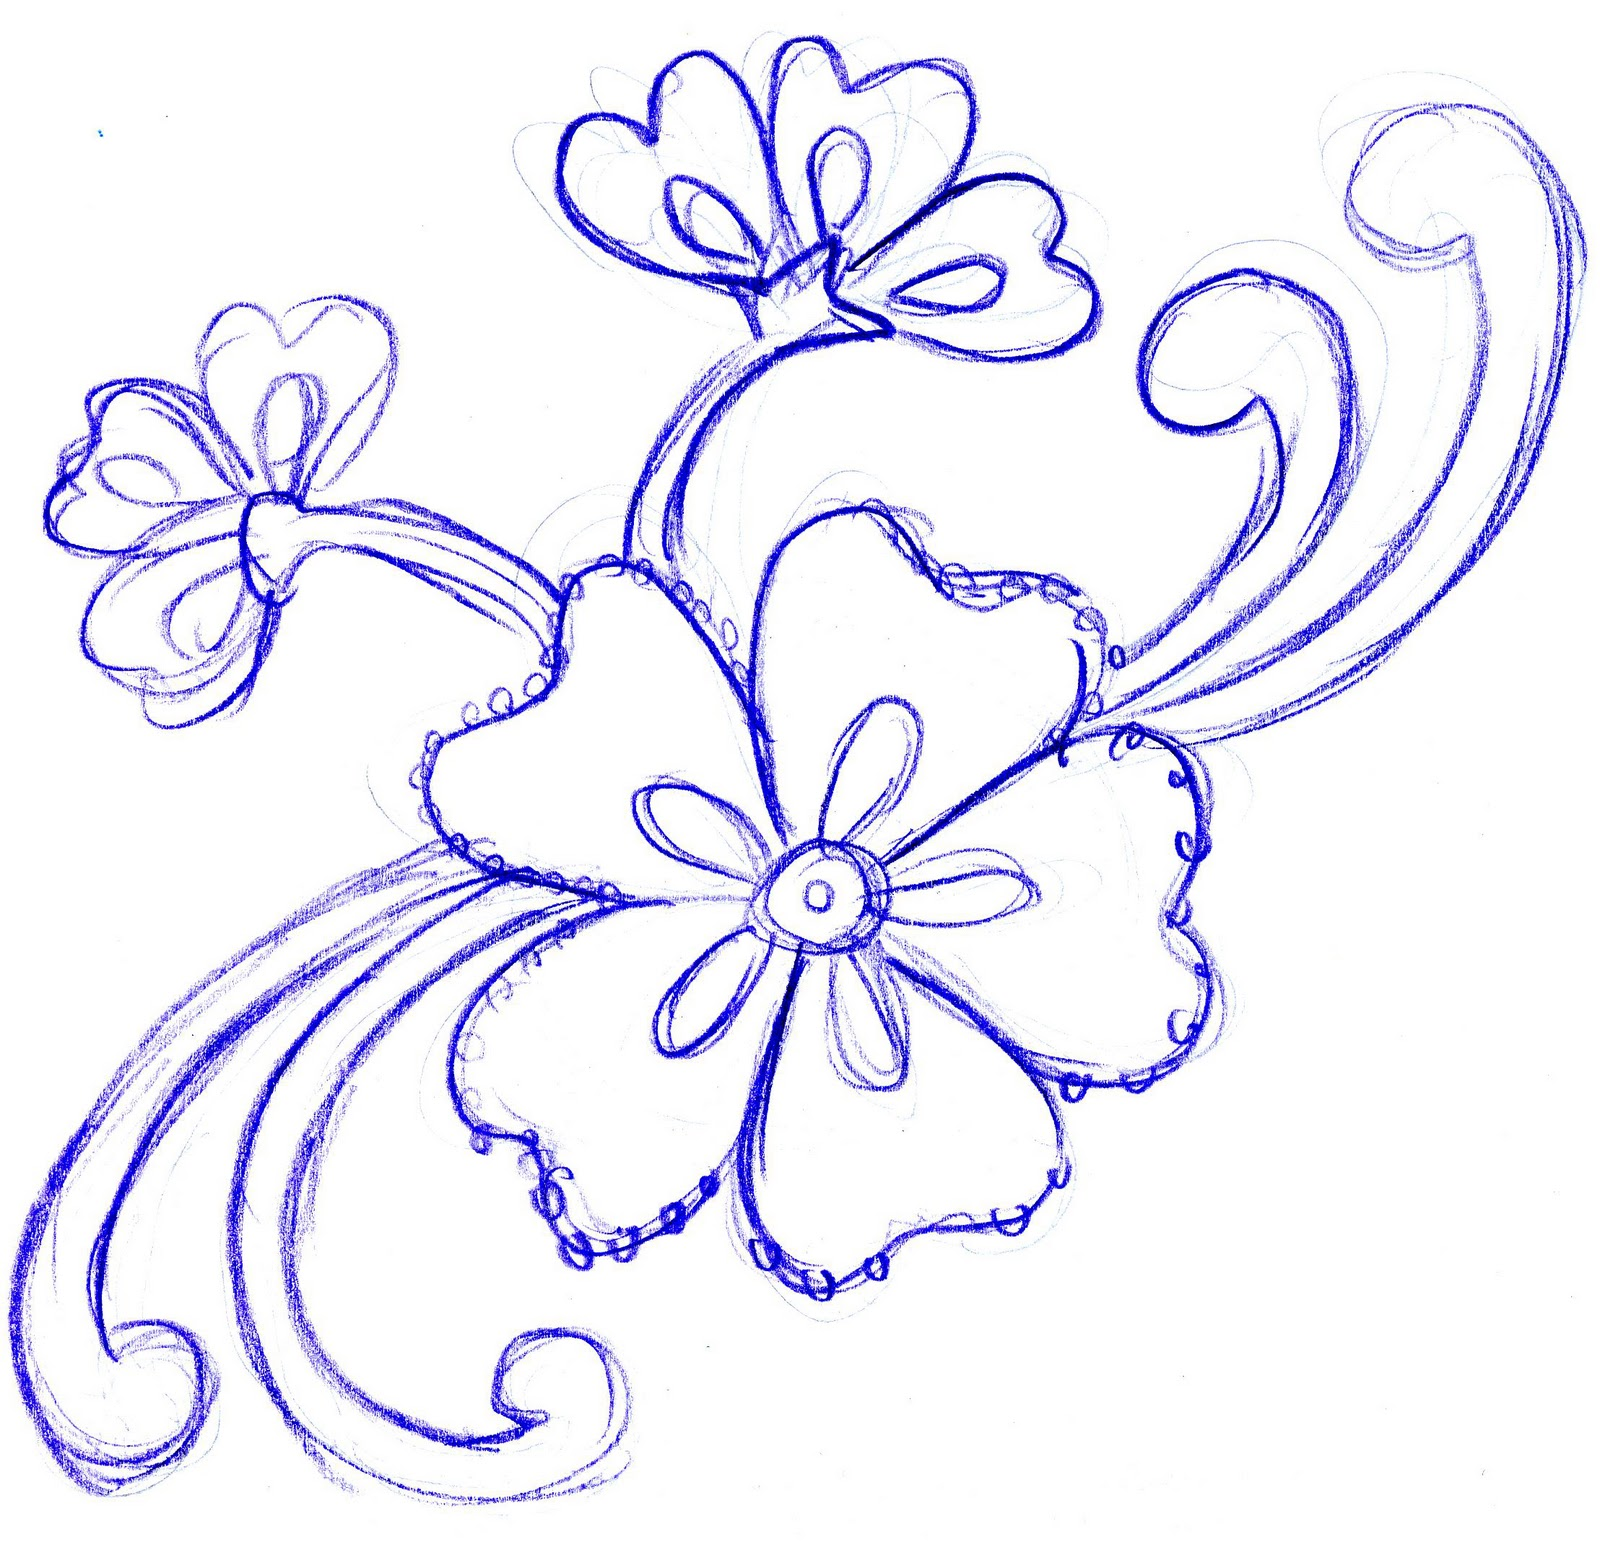 Flower Drawings Simple: Corinne Okada Design: Concept Sketches For Hospital Art